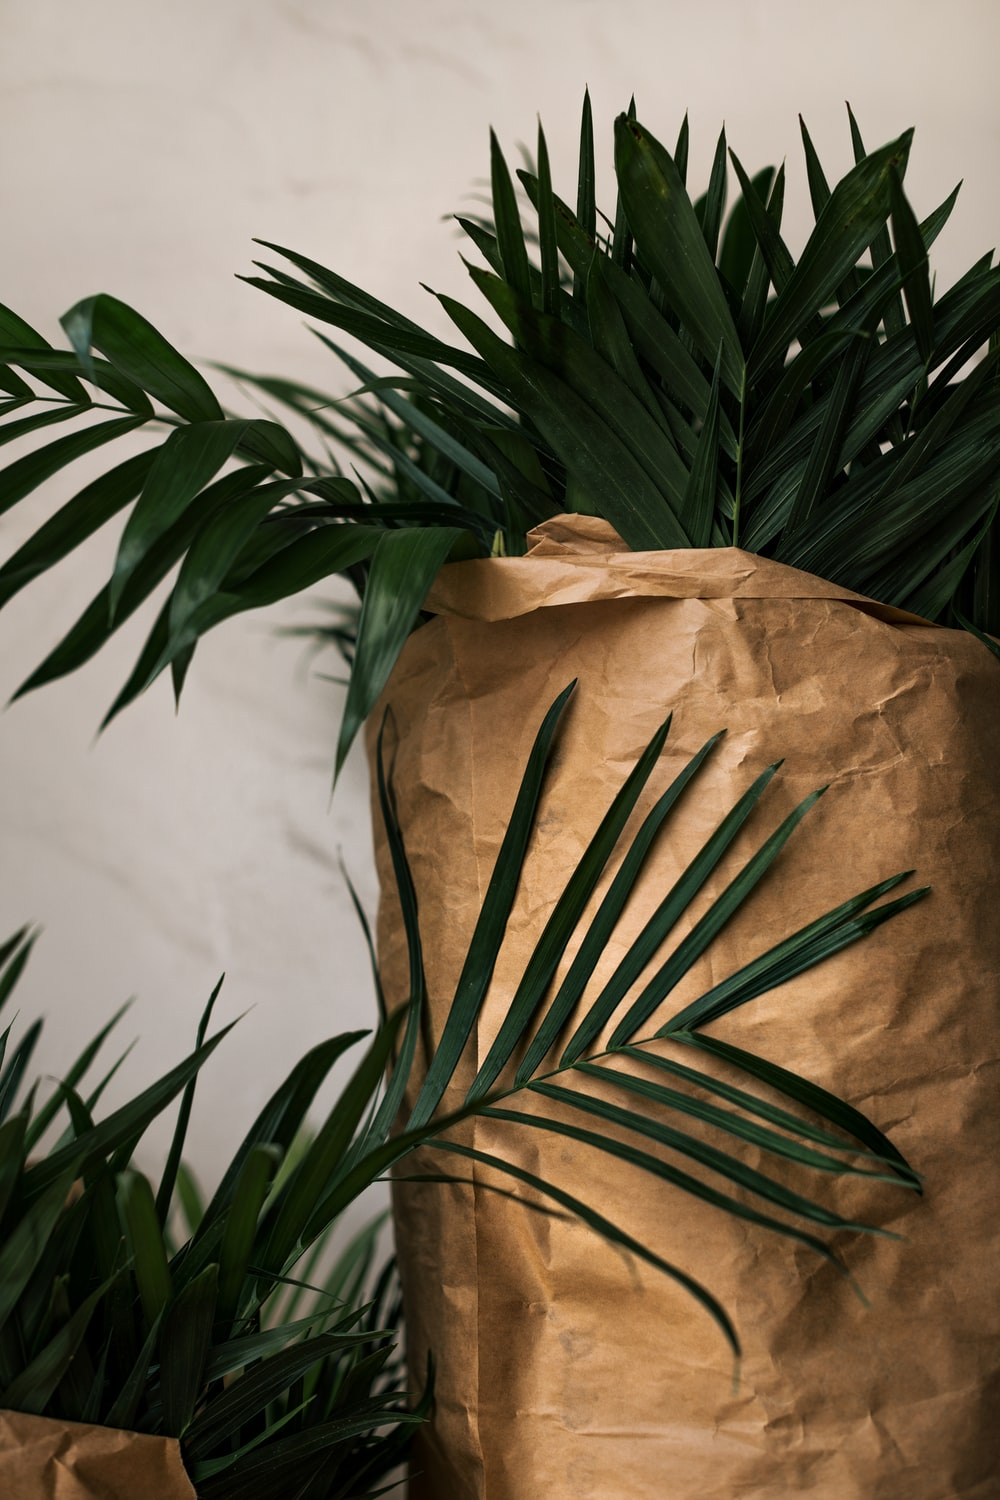 green plant beside brown textile